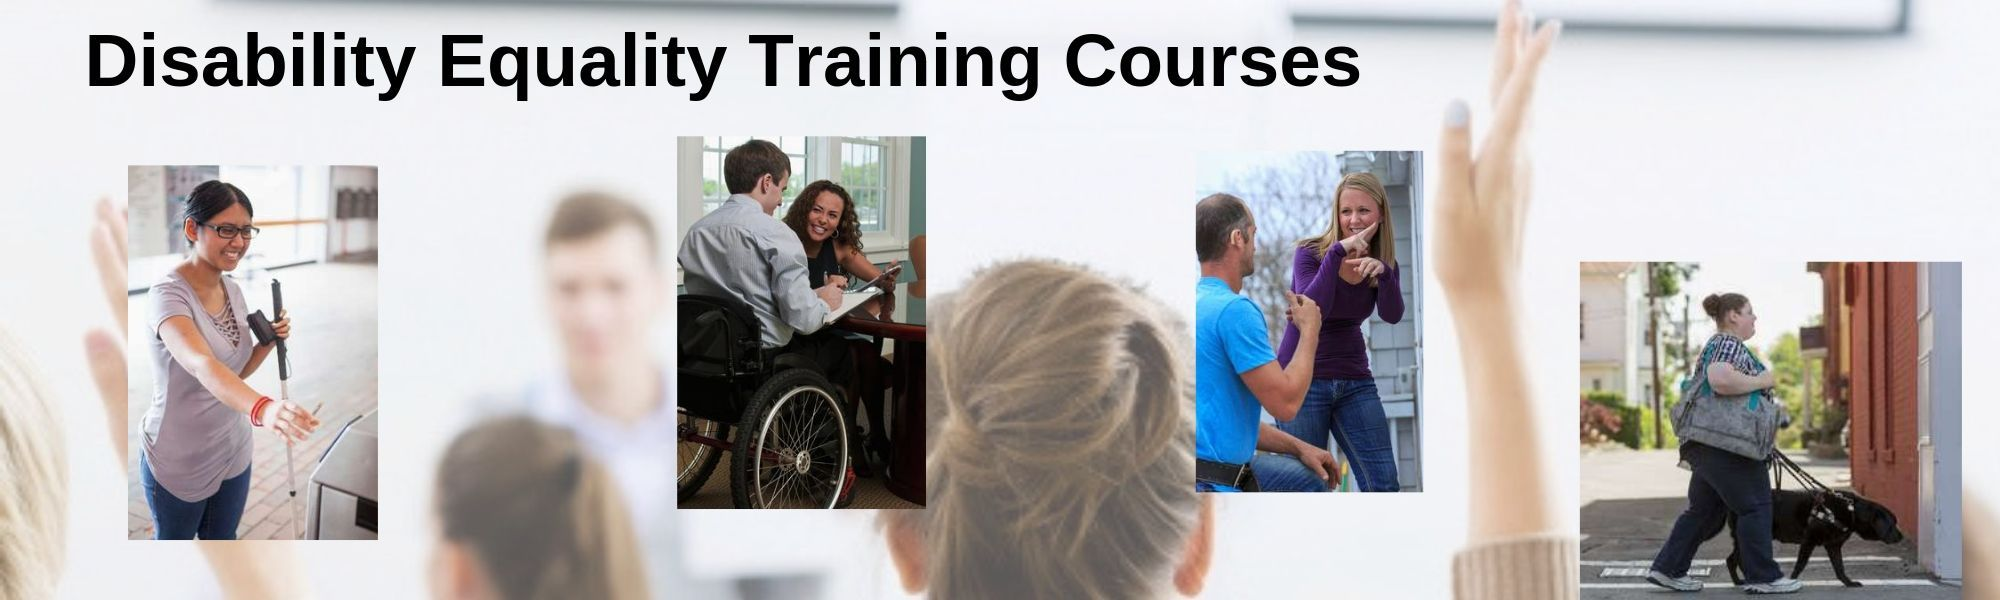 Disability Equality Training Courses